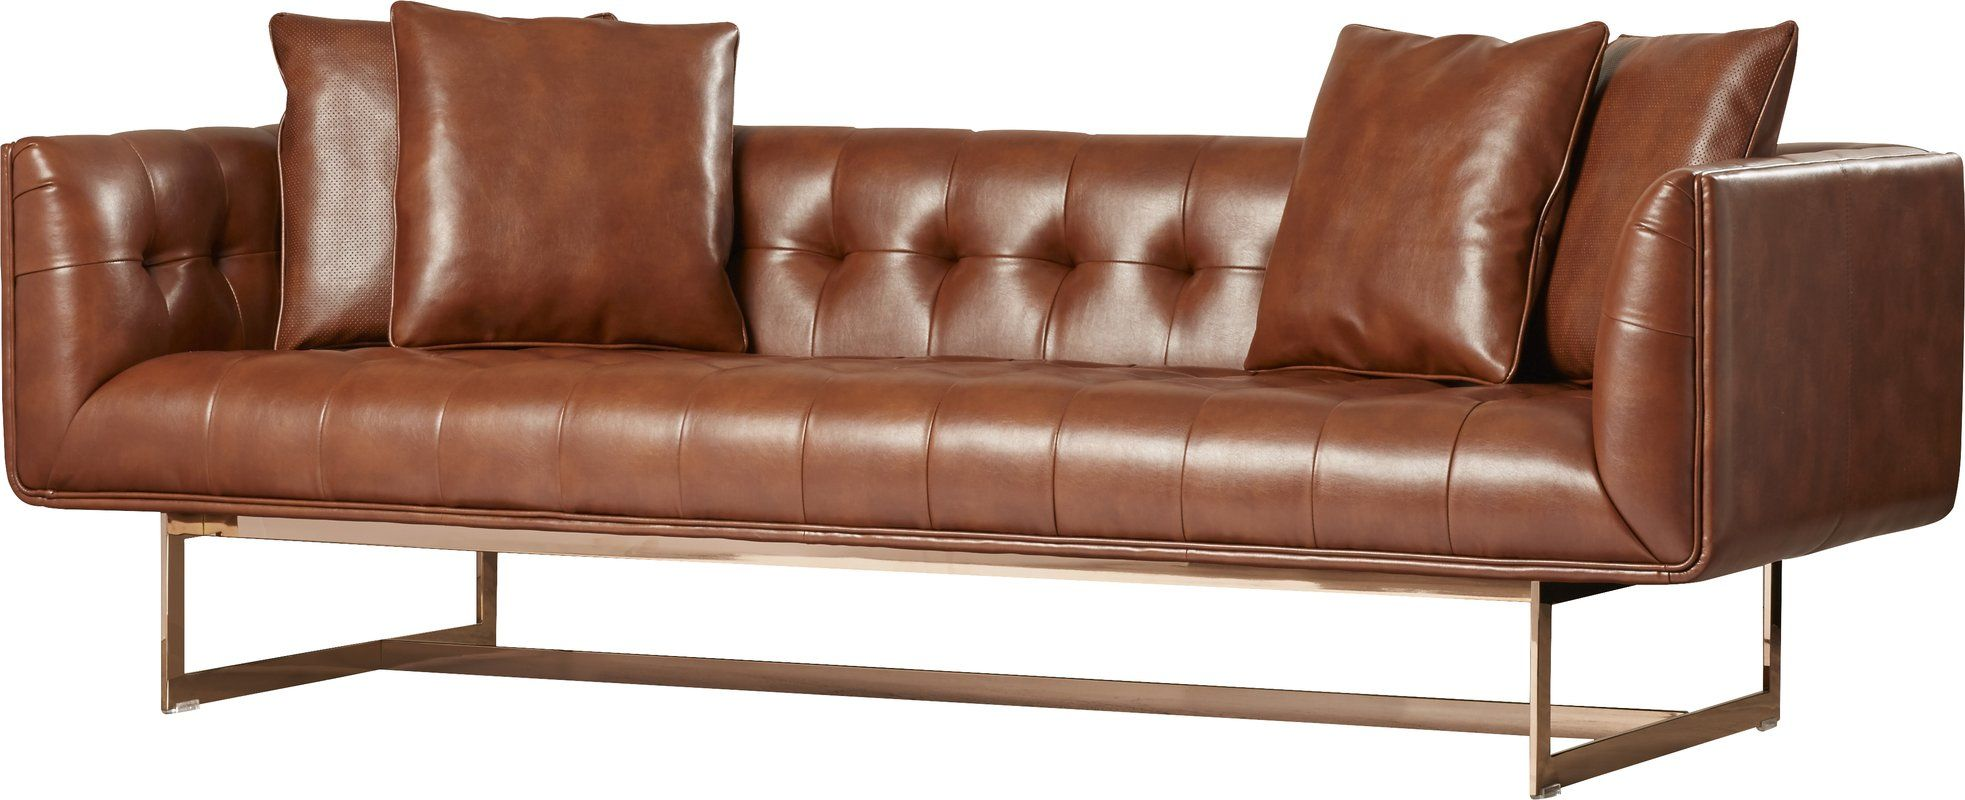 Brown Real Leather Couch Club Chesterfield Sofa